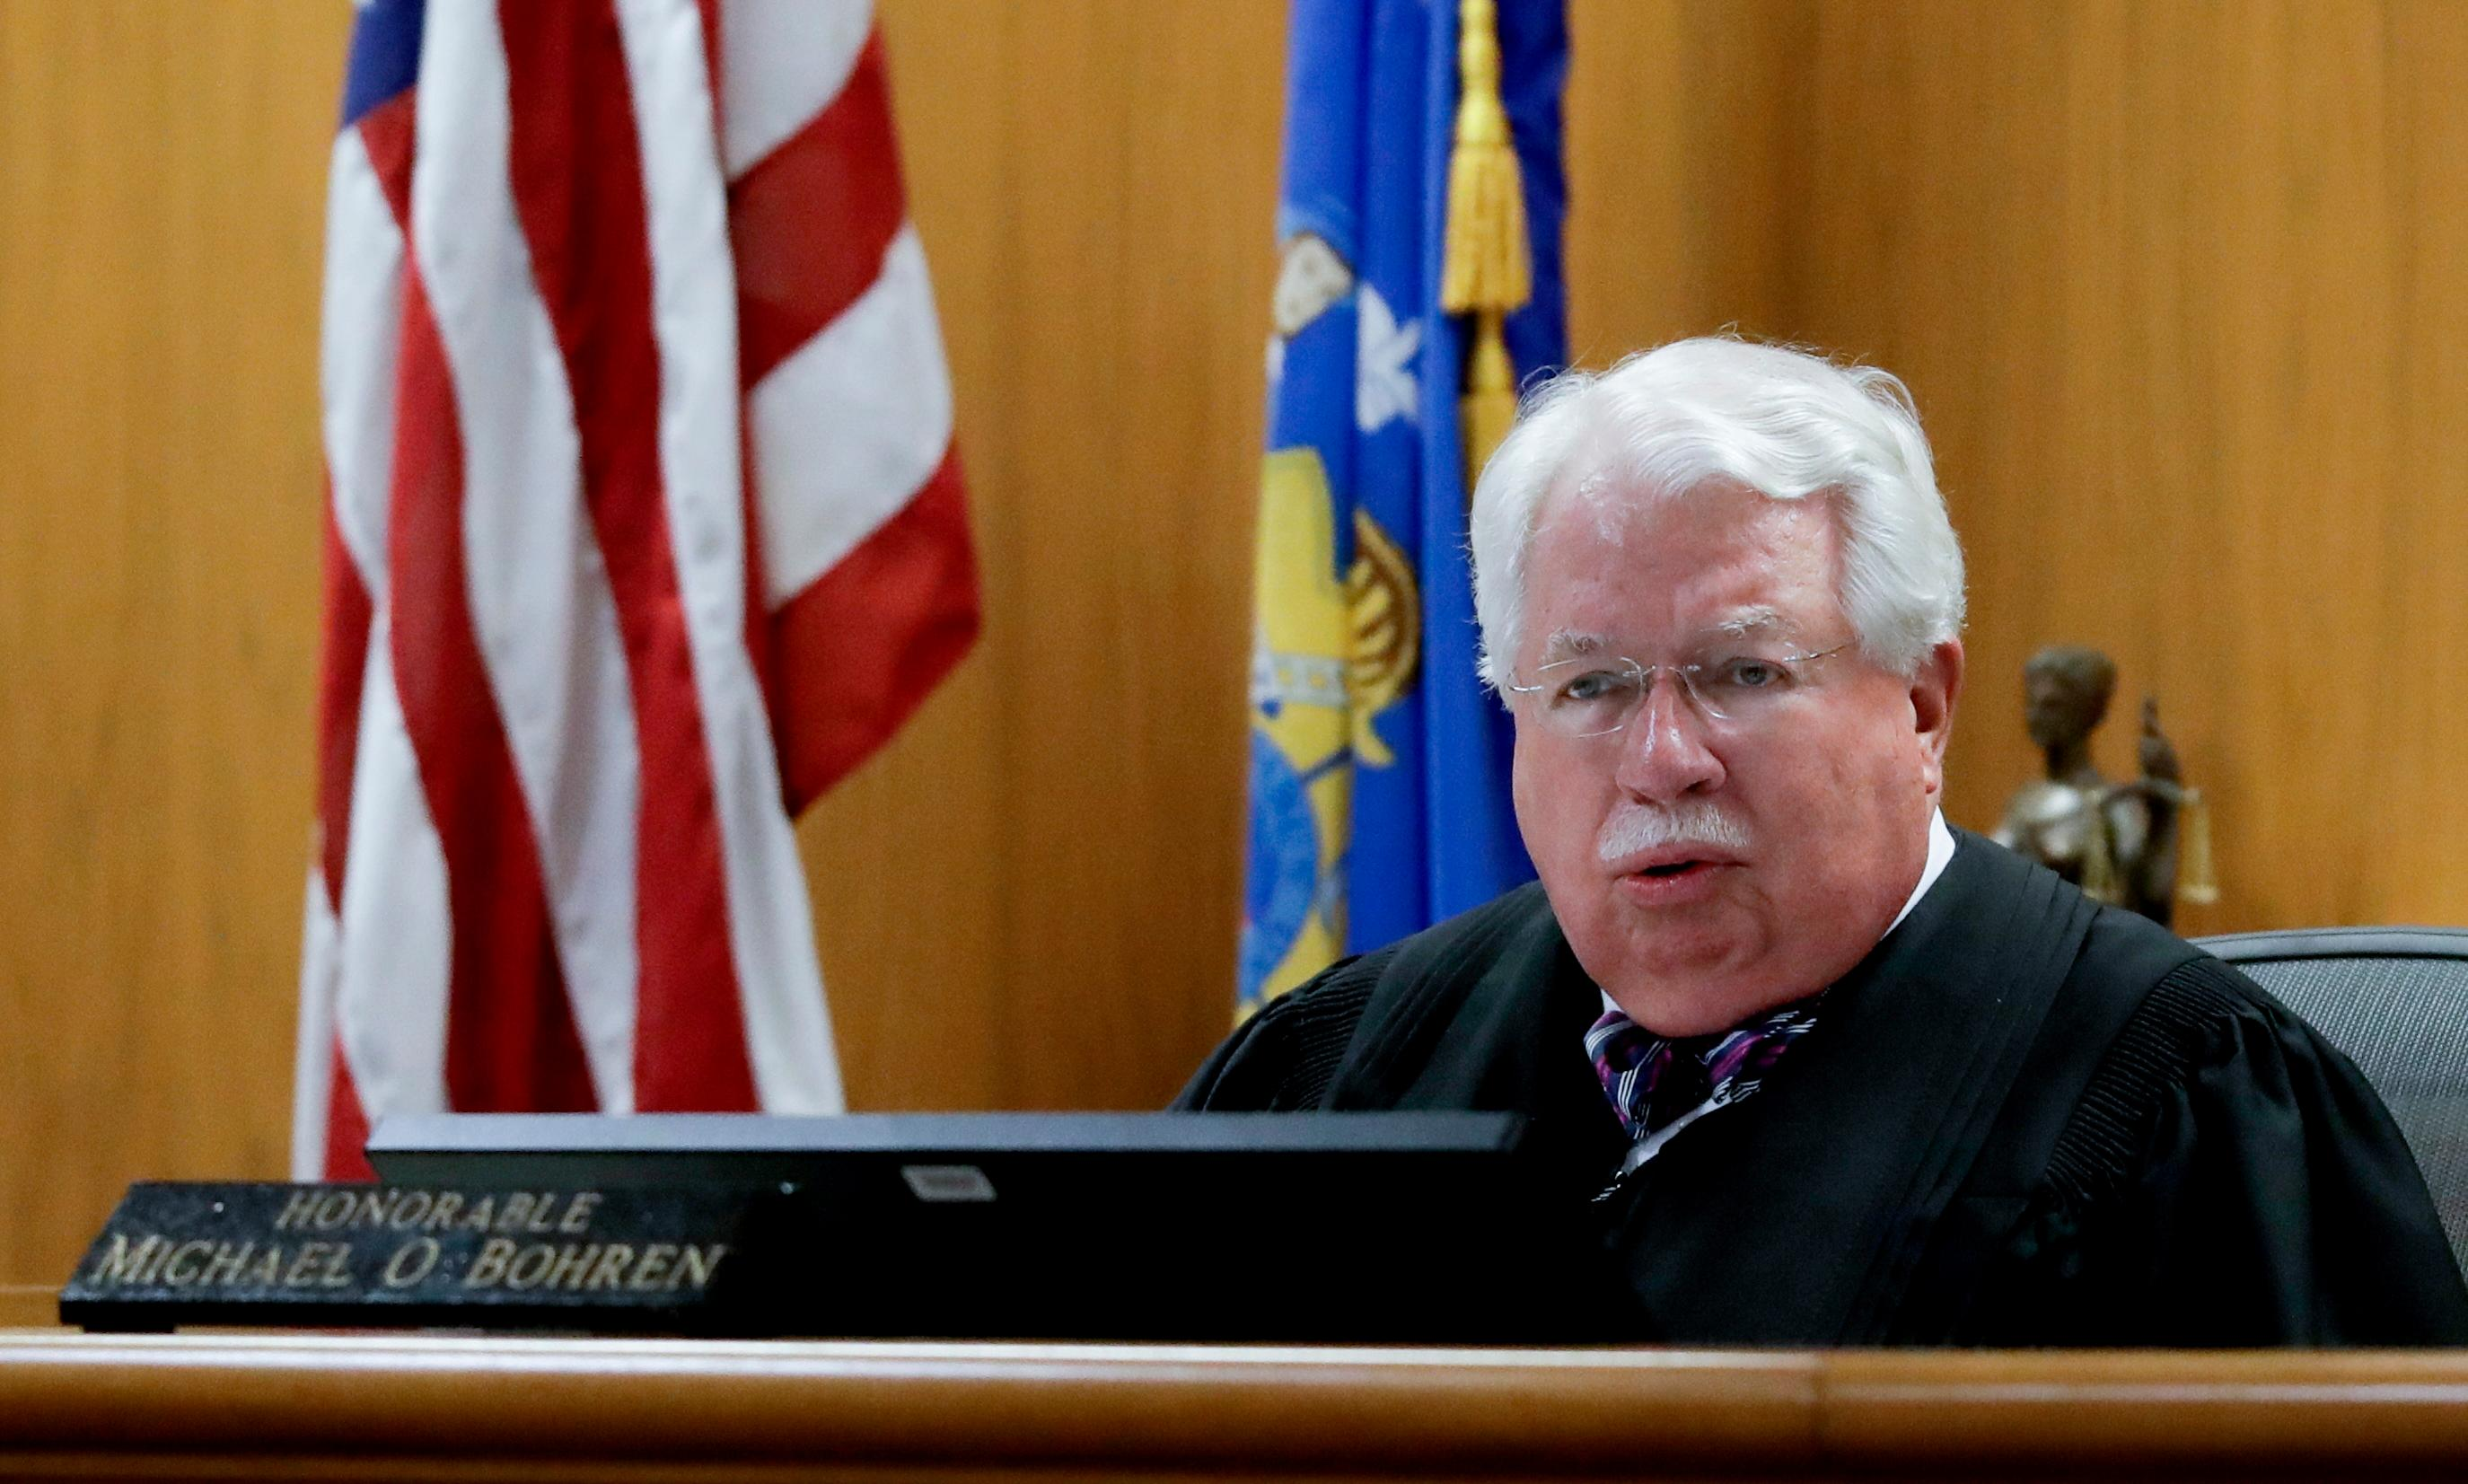 Judge Michael Bohren talks to potential jurors in the trial to determine 15-year-old Weier's competency at Waukesha County Courthouse Monday, Sept 11, 2017, in Waukesha, Wis.  (AP Photo/Morry Gash, Pool)